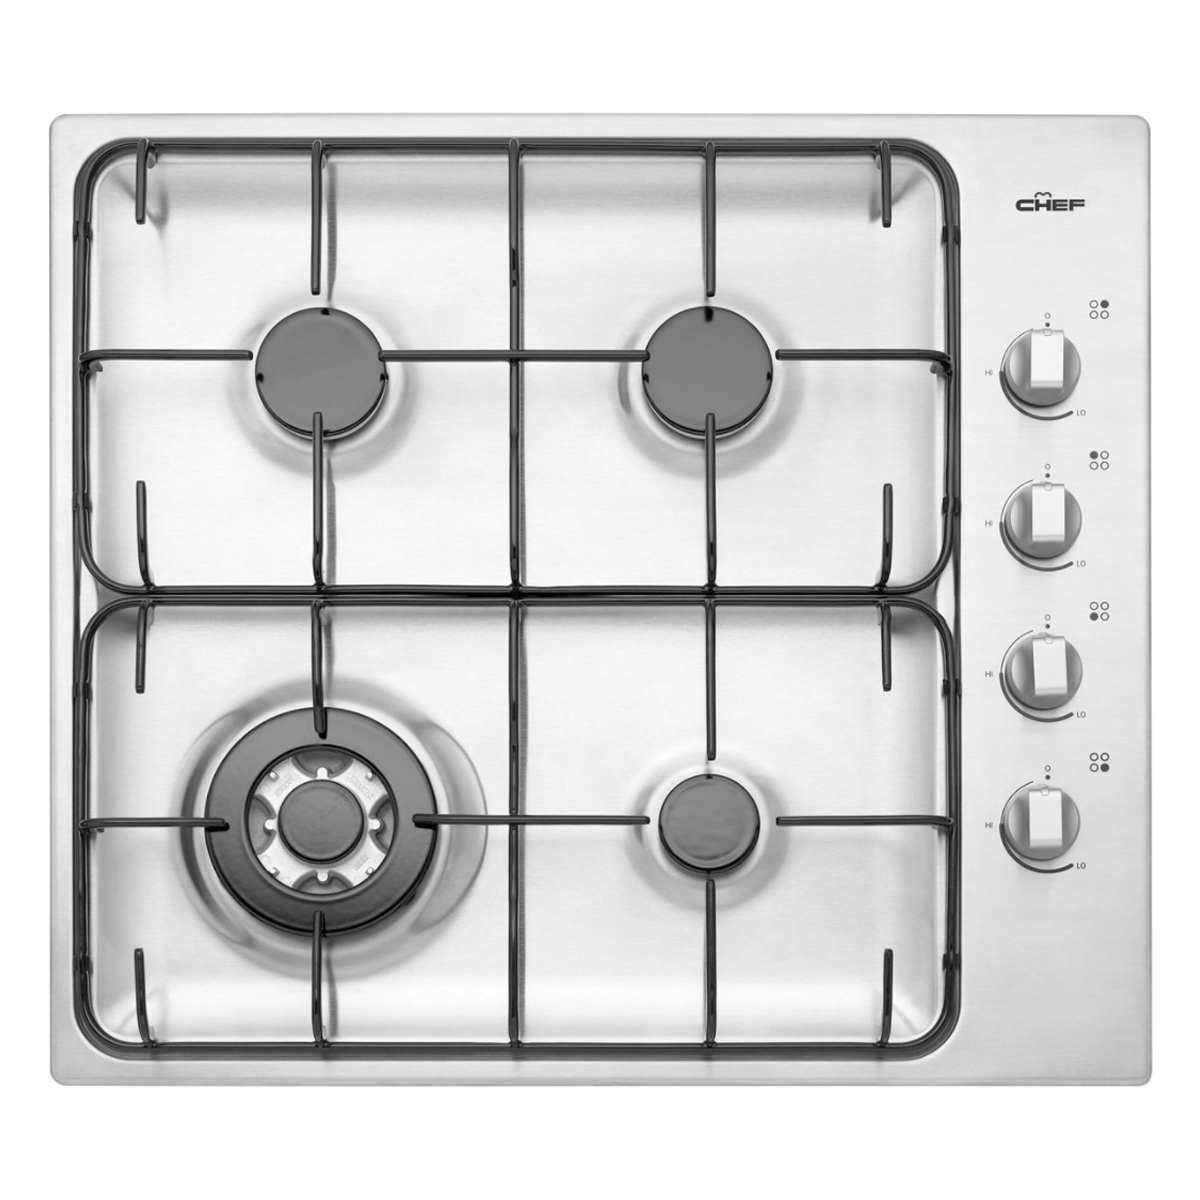 Chef GHC617S Gas Cooktop 145598